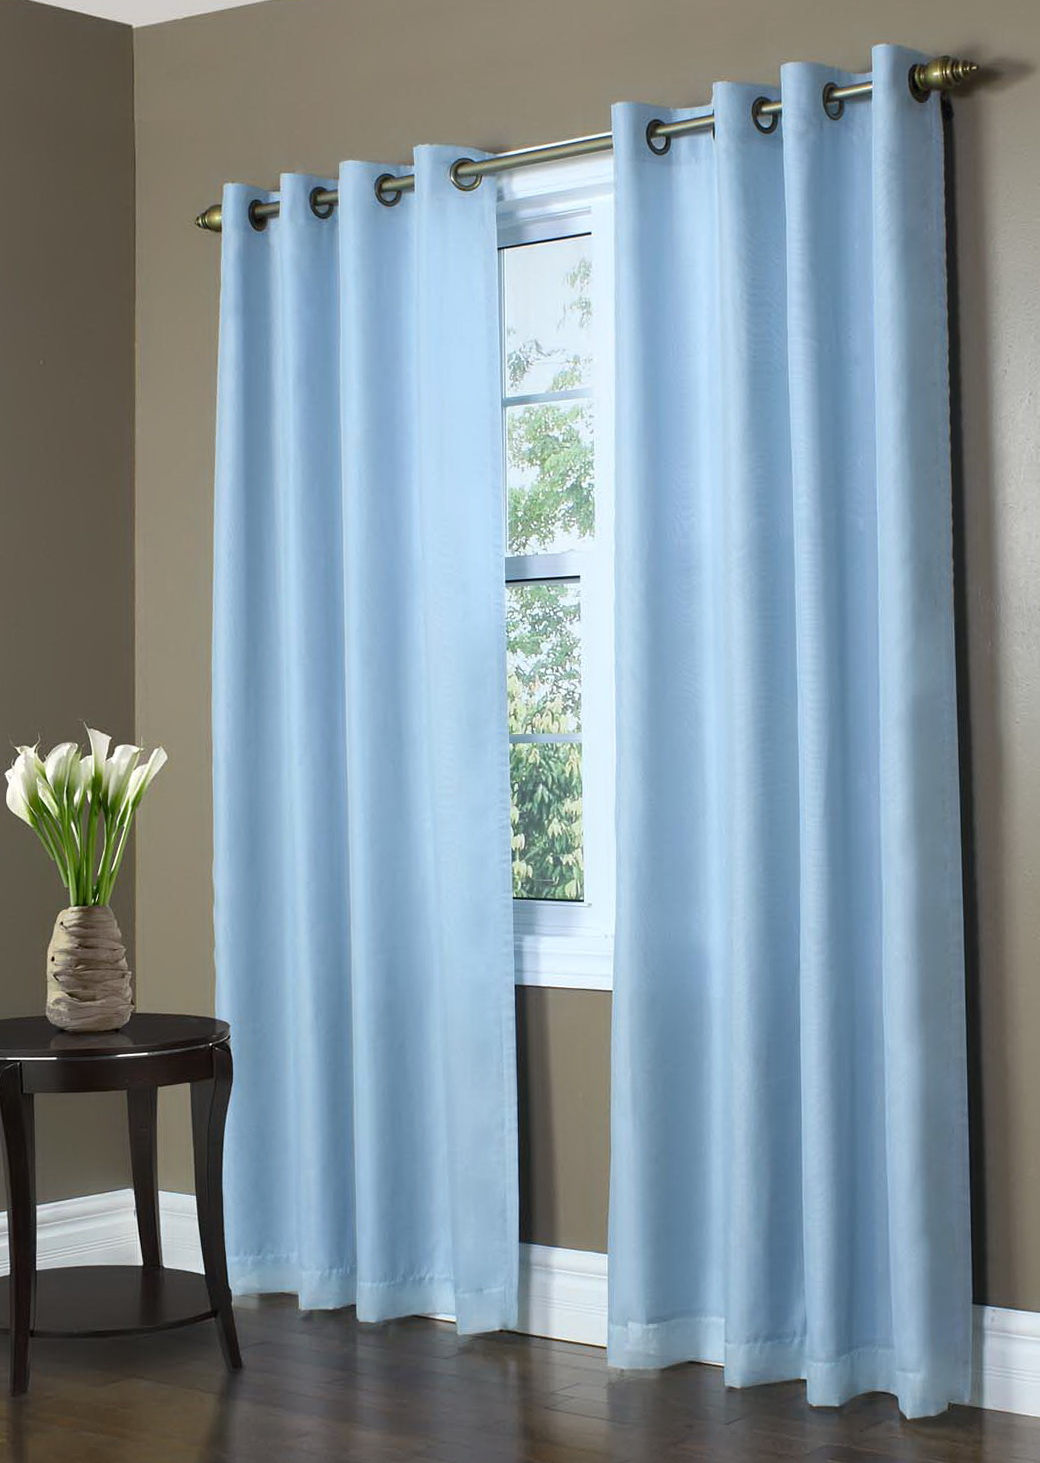 Baby Blue Blackout Curtains Light Blue Patterned Curtains Home Design Ideas